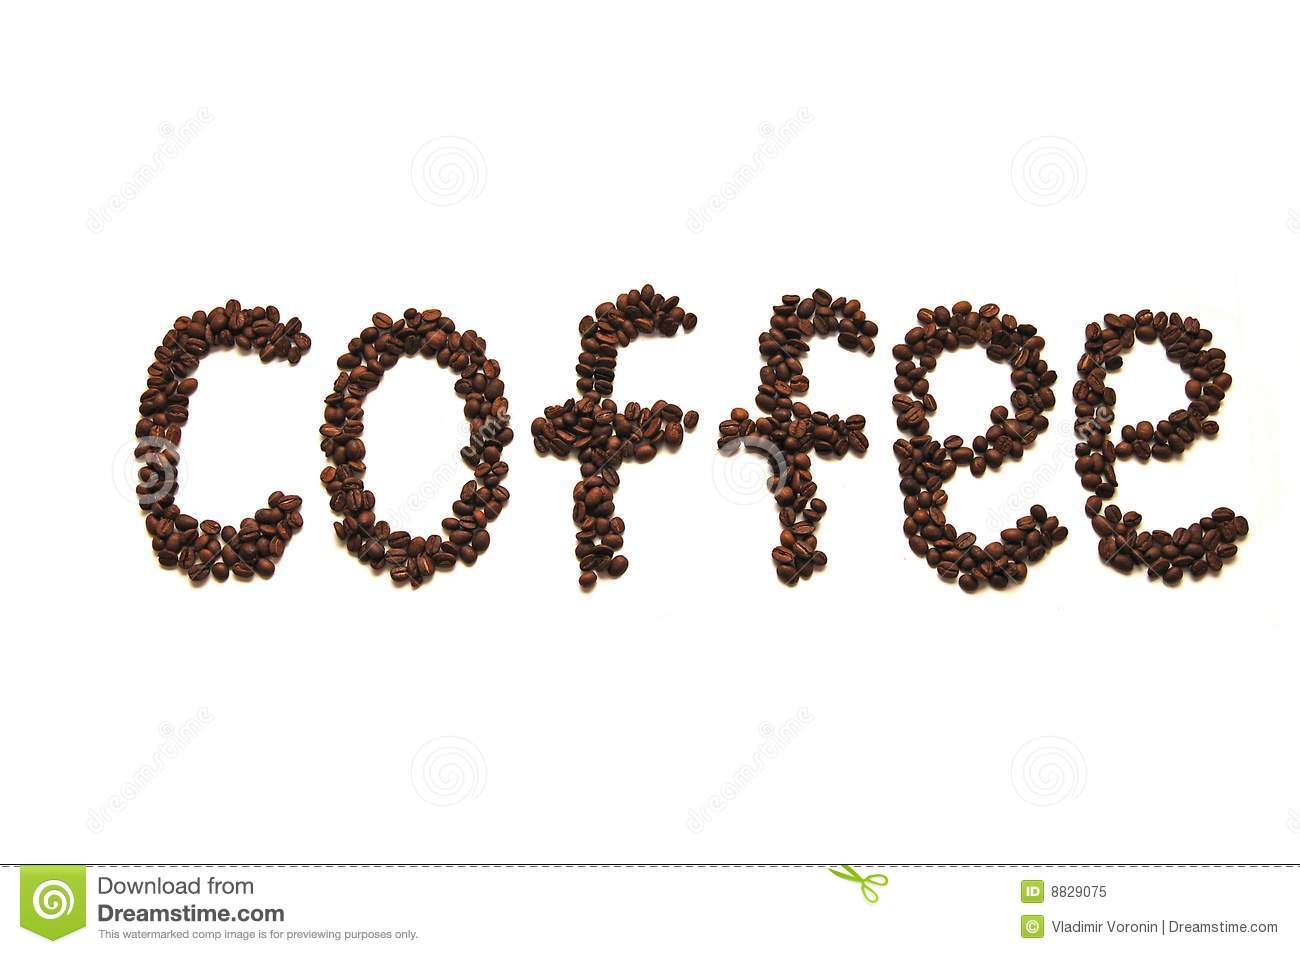 Royalty Free Stock Photo Coffee Word Written Grain Coffee Image8829075 on xl bean bag black